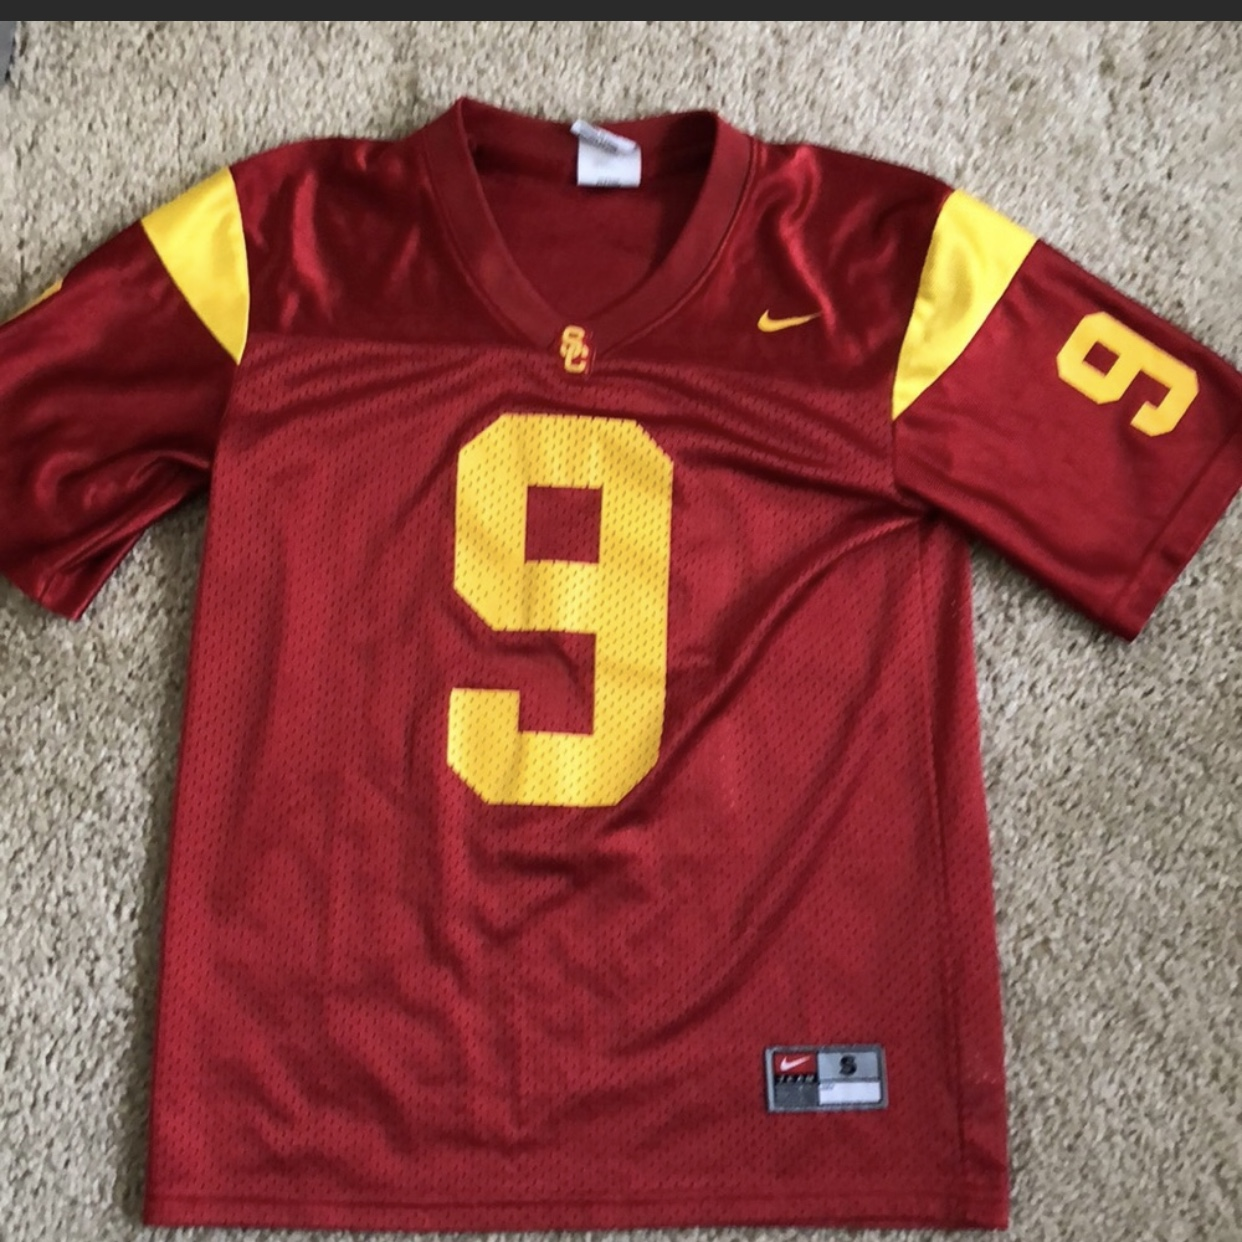 separation shoes da627 25701 Boys Nike USC jersey #9. Size small. Has small snag... - Depop